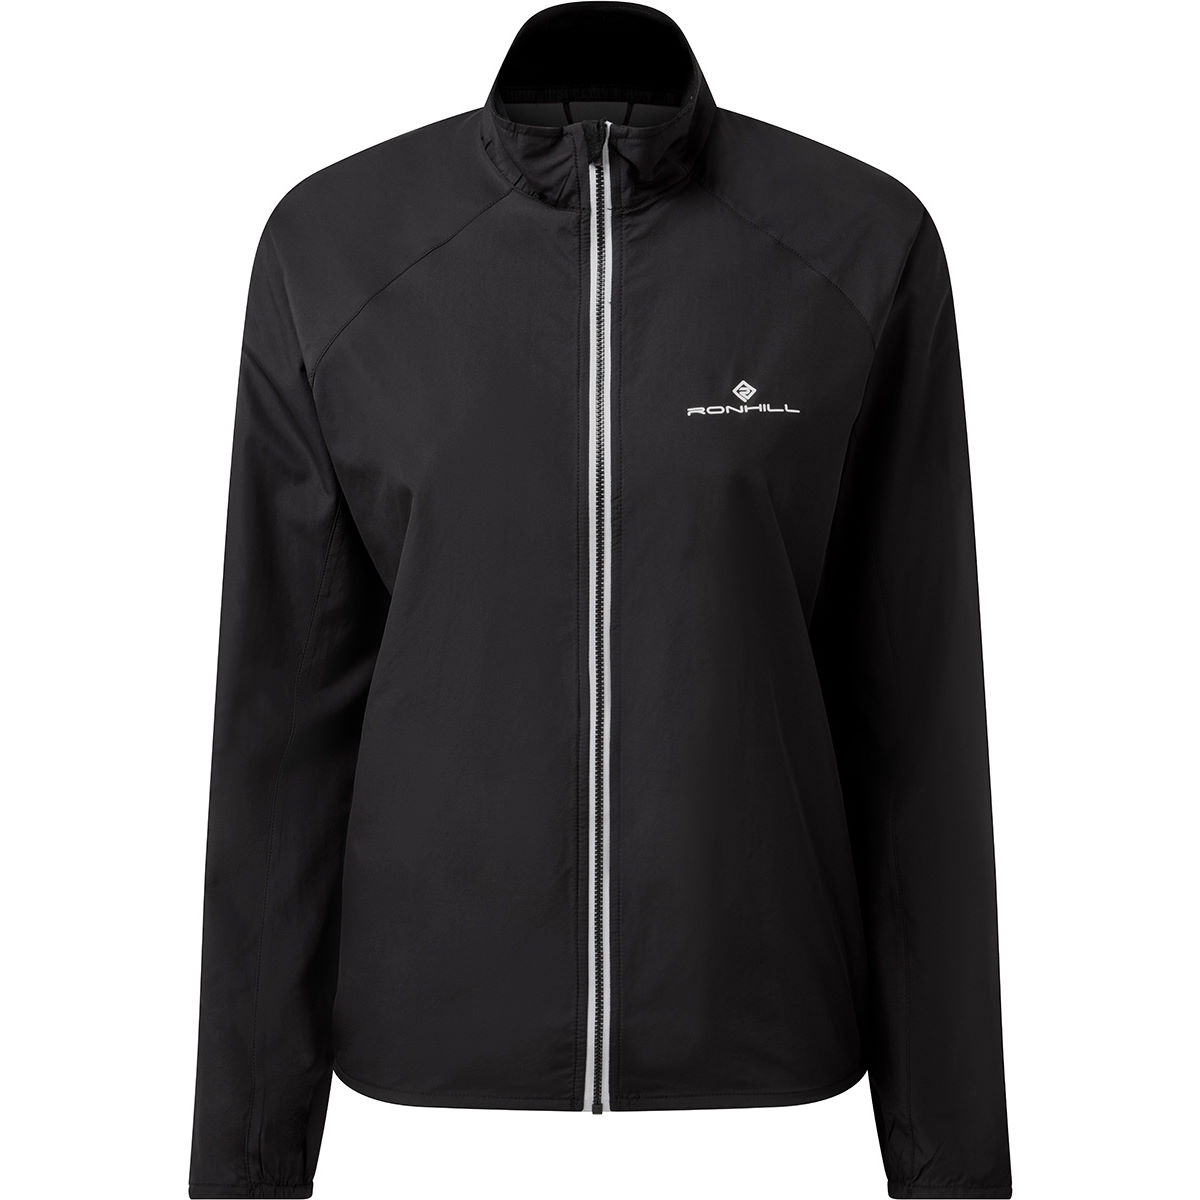 Ronhill Womens Core Running Jacket - Large All Black  Jackets